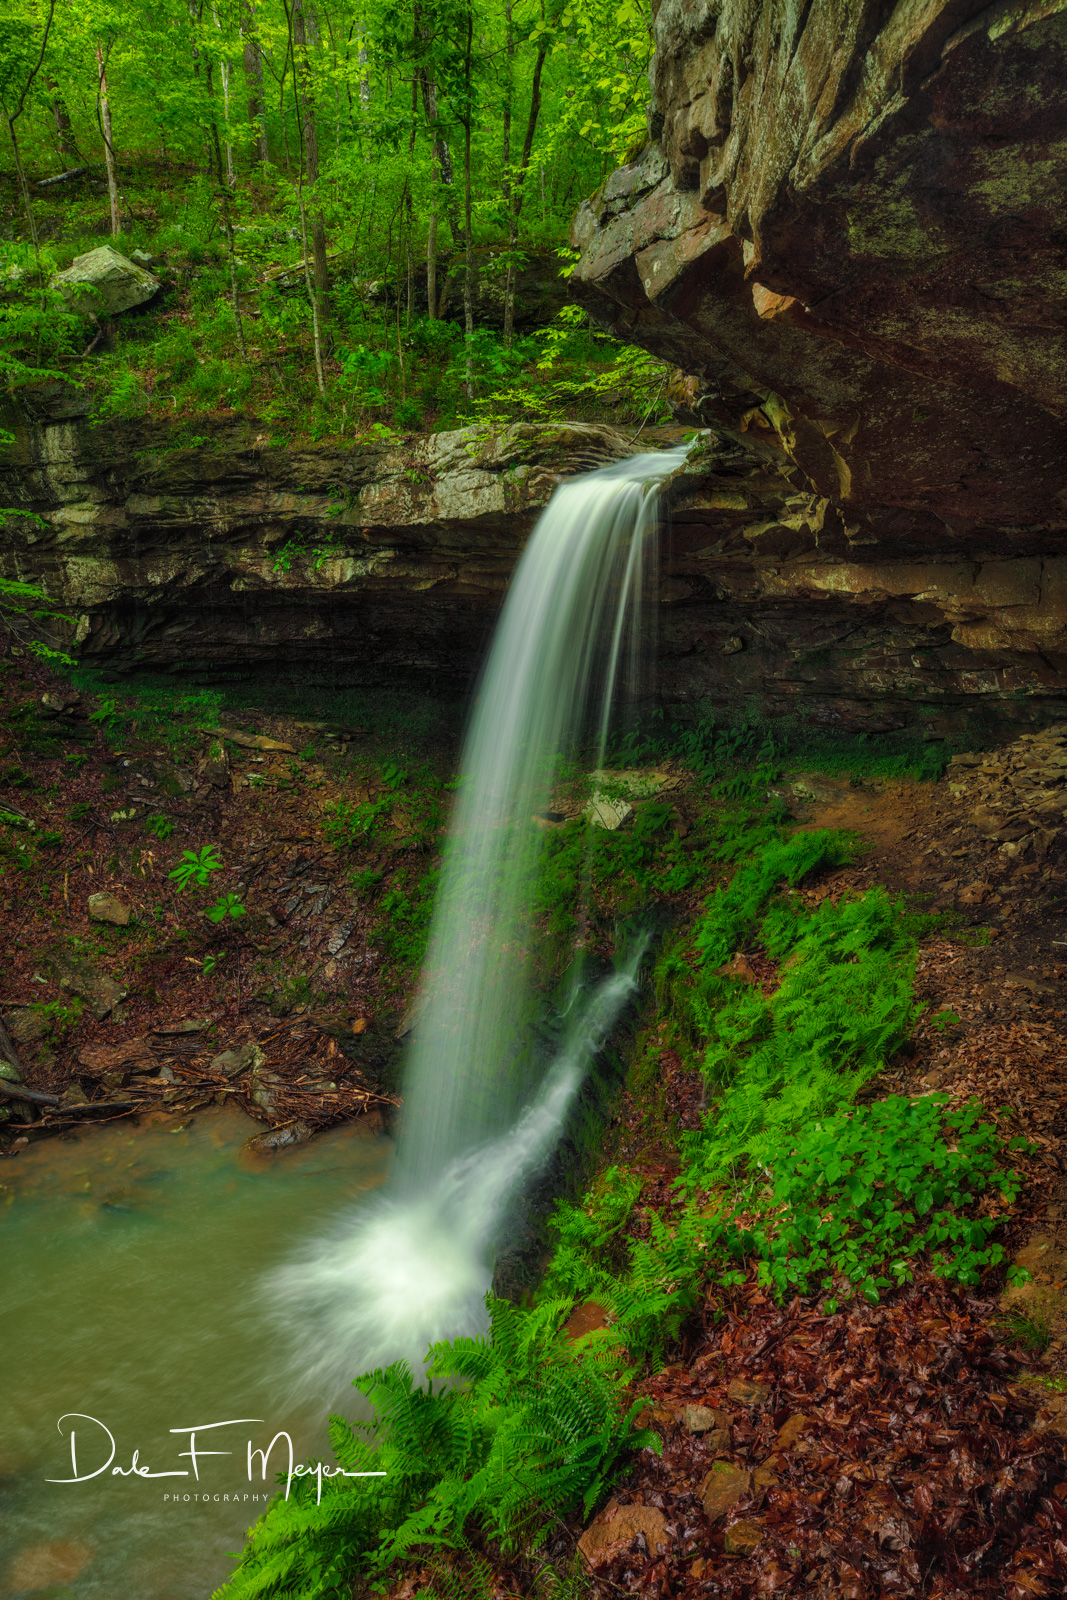 Mule Trail Falls in the Upper Buffalo Wilderness Region of Arkansas. In the 1800's there was a mule trail that can still be seen...